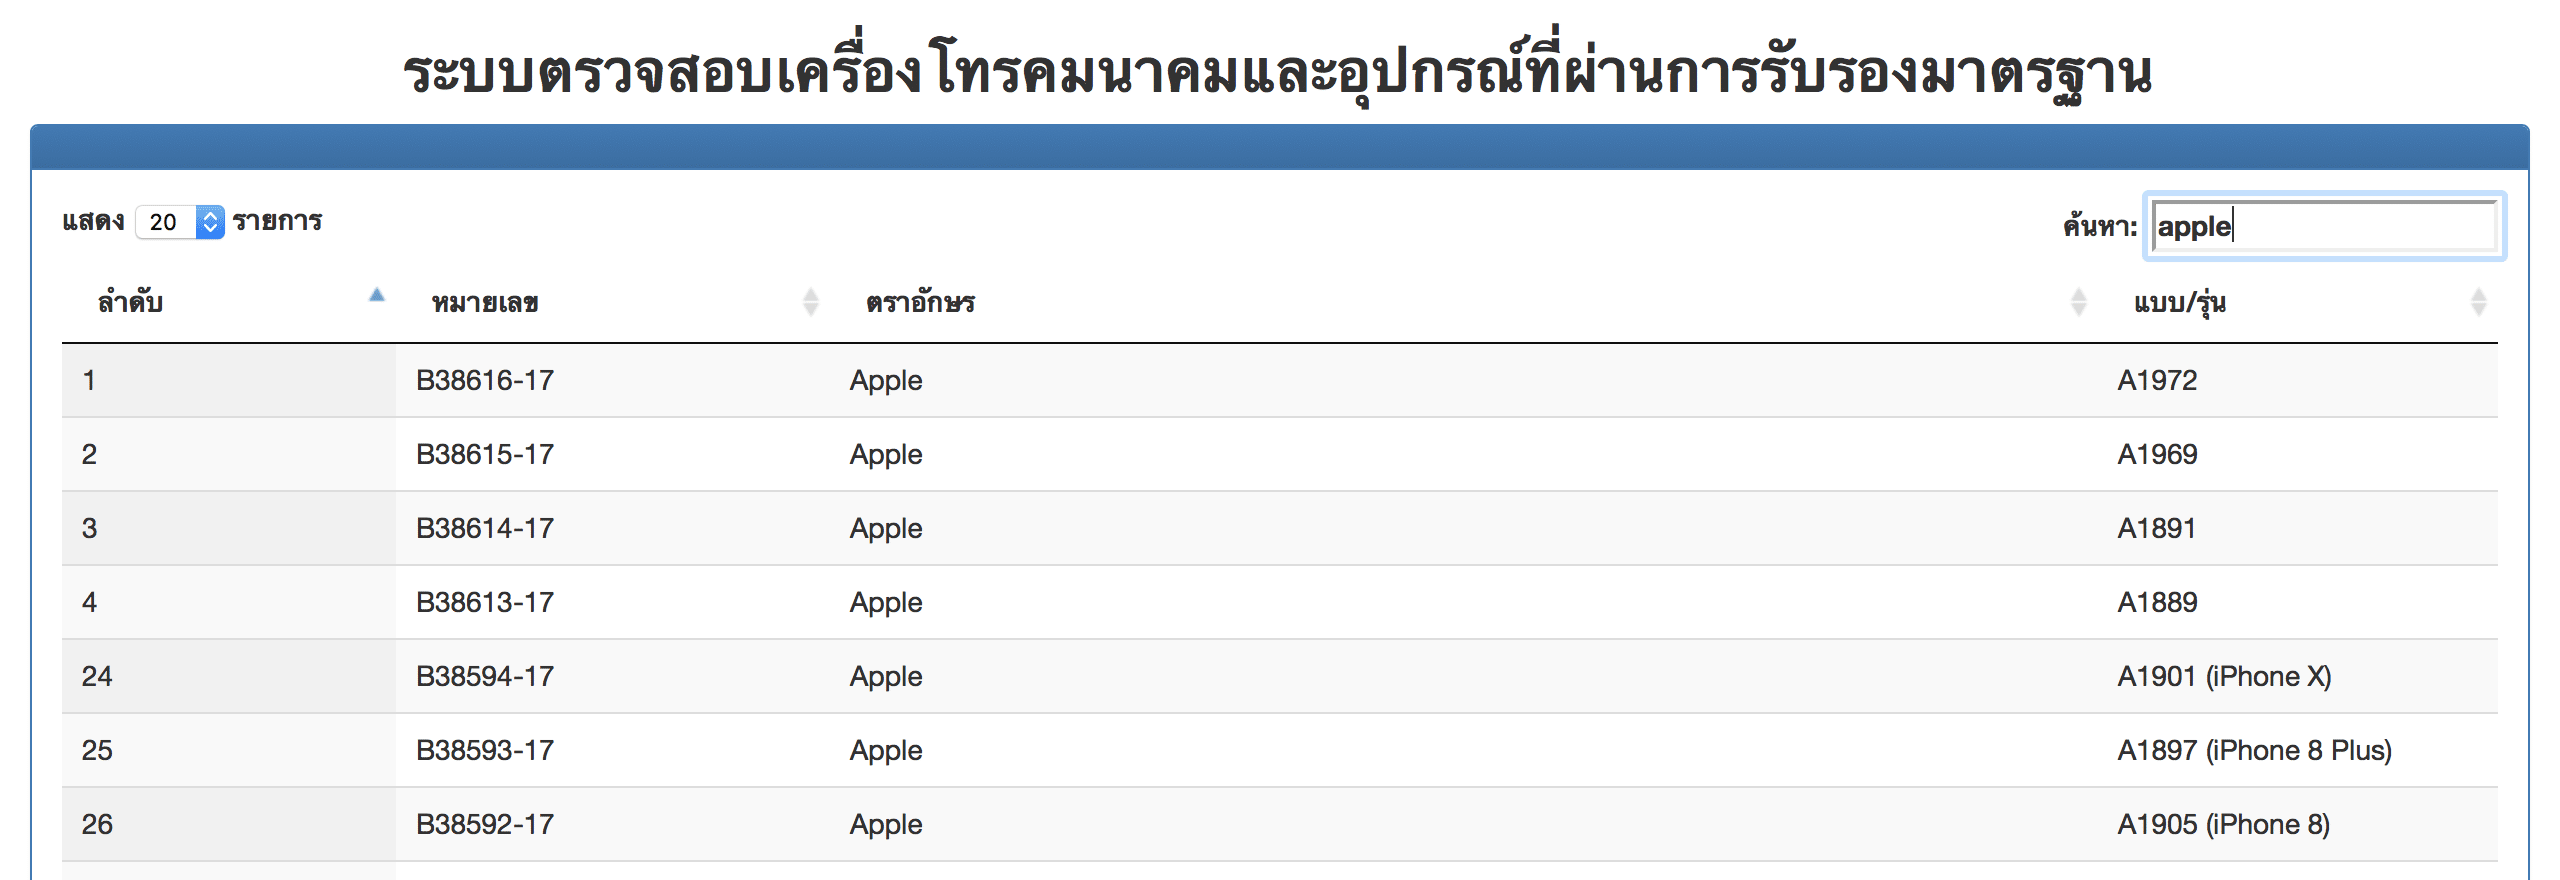 กสทช iphone 8 plus x apple watch series 3